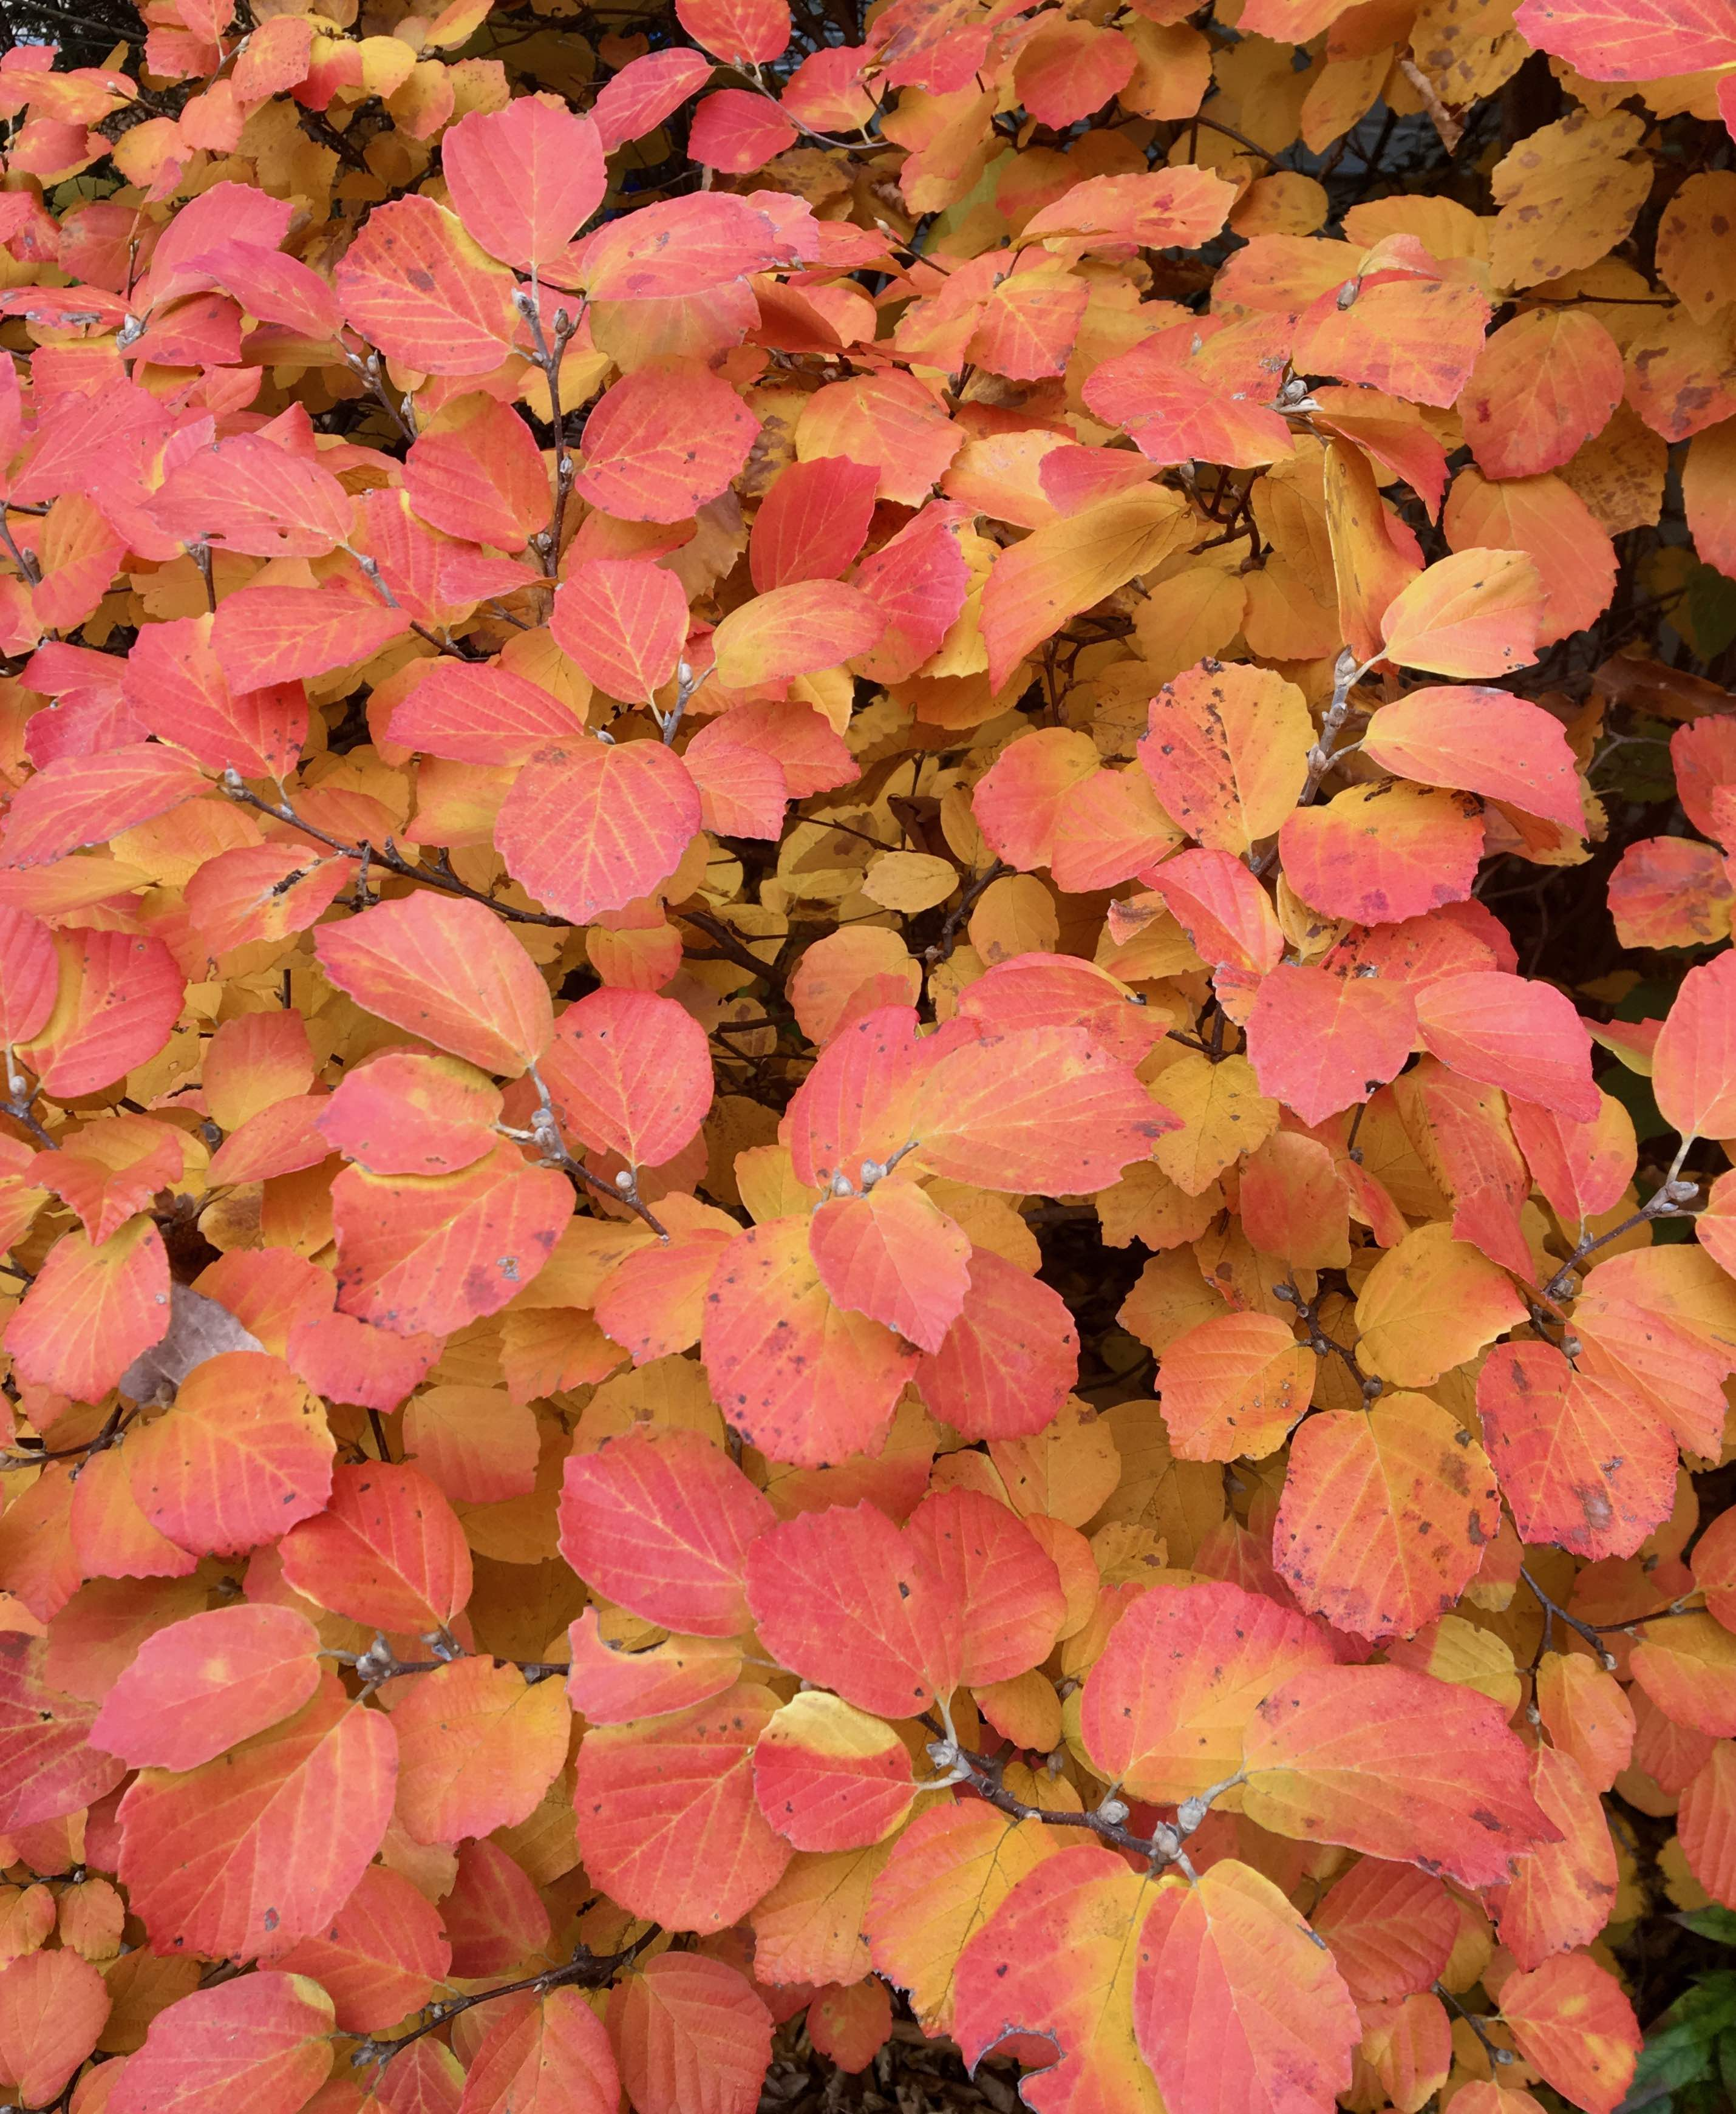 The Scientific Name is Fothergilla major. You will likely hear them called Large Witch-alder, Mountain Witch-alder, Tall Fothergilla. This picture shows the Fall foliage color ranges from yellow to deep orange to red of Fothergilla major